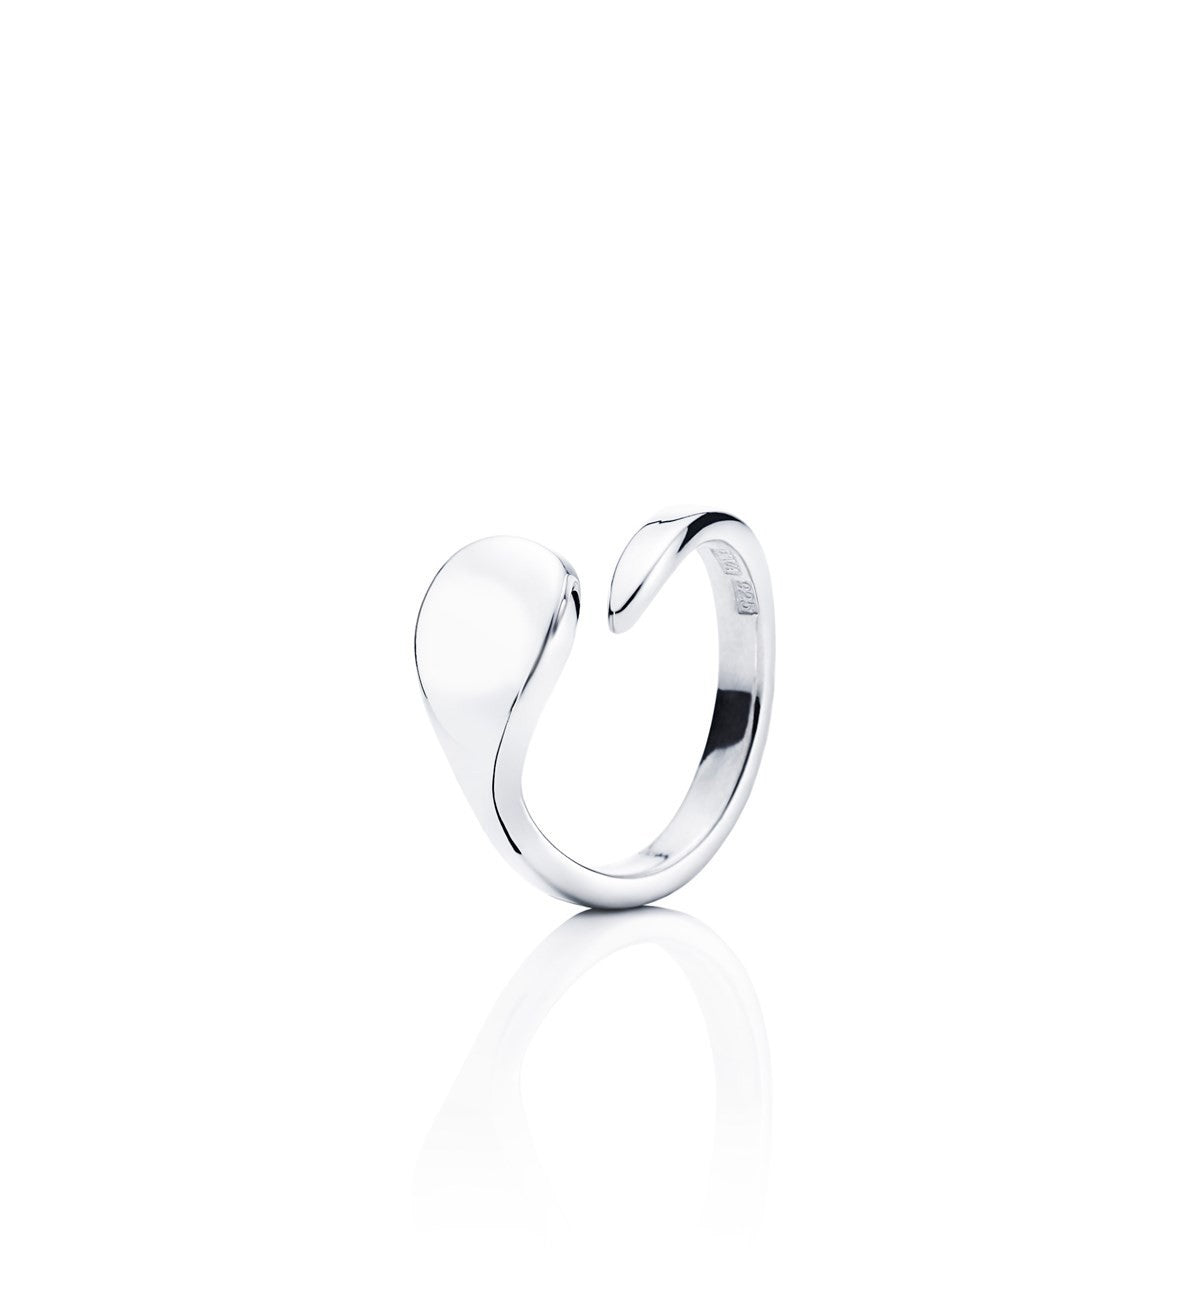 Efva Attling Tears Ring sormus